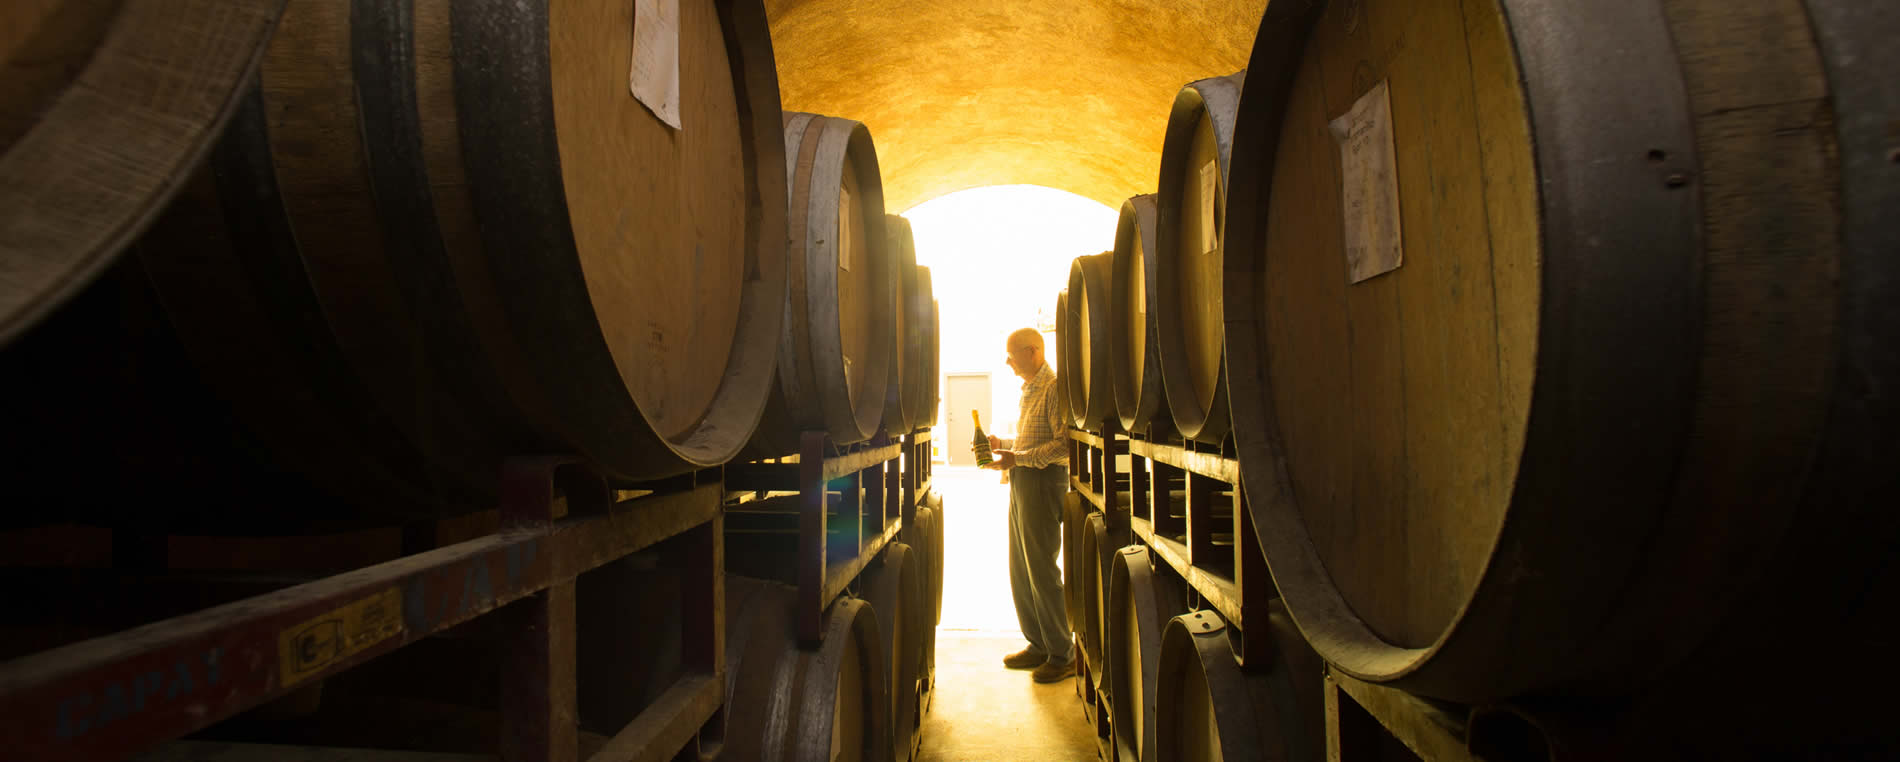 russian river valley wineries